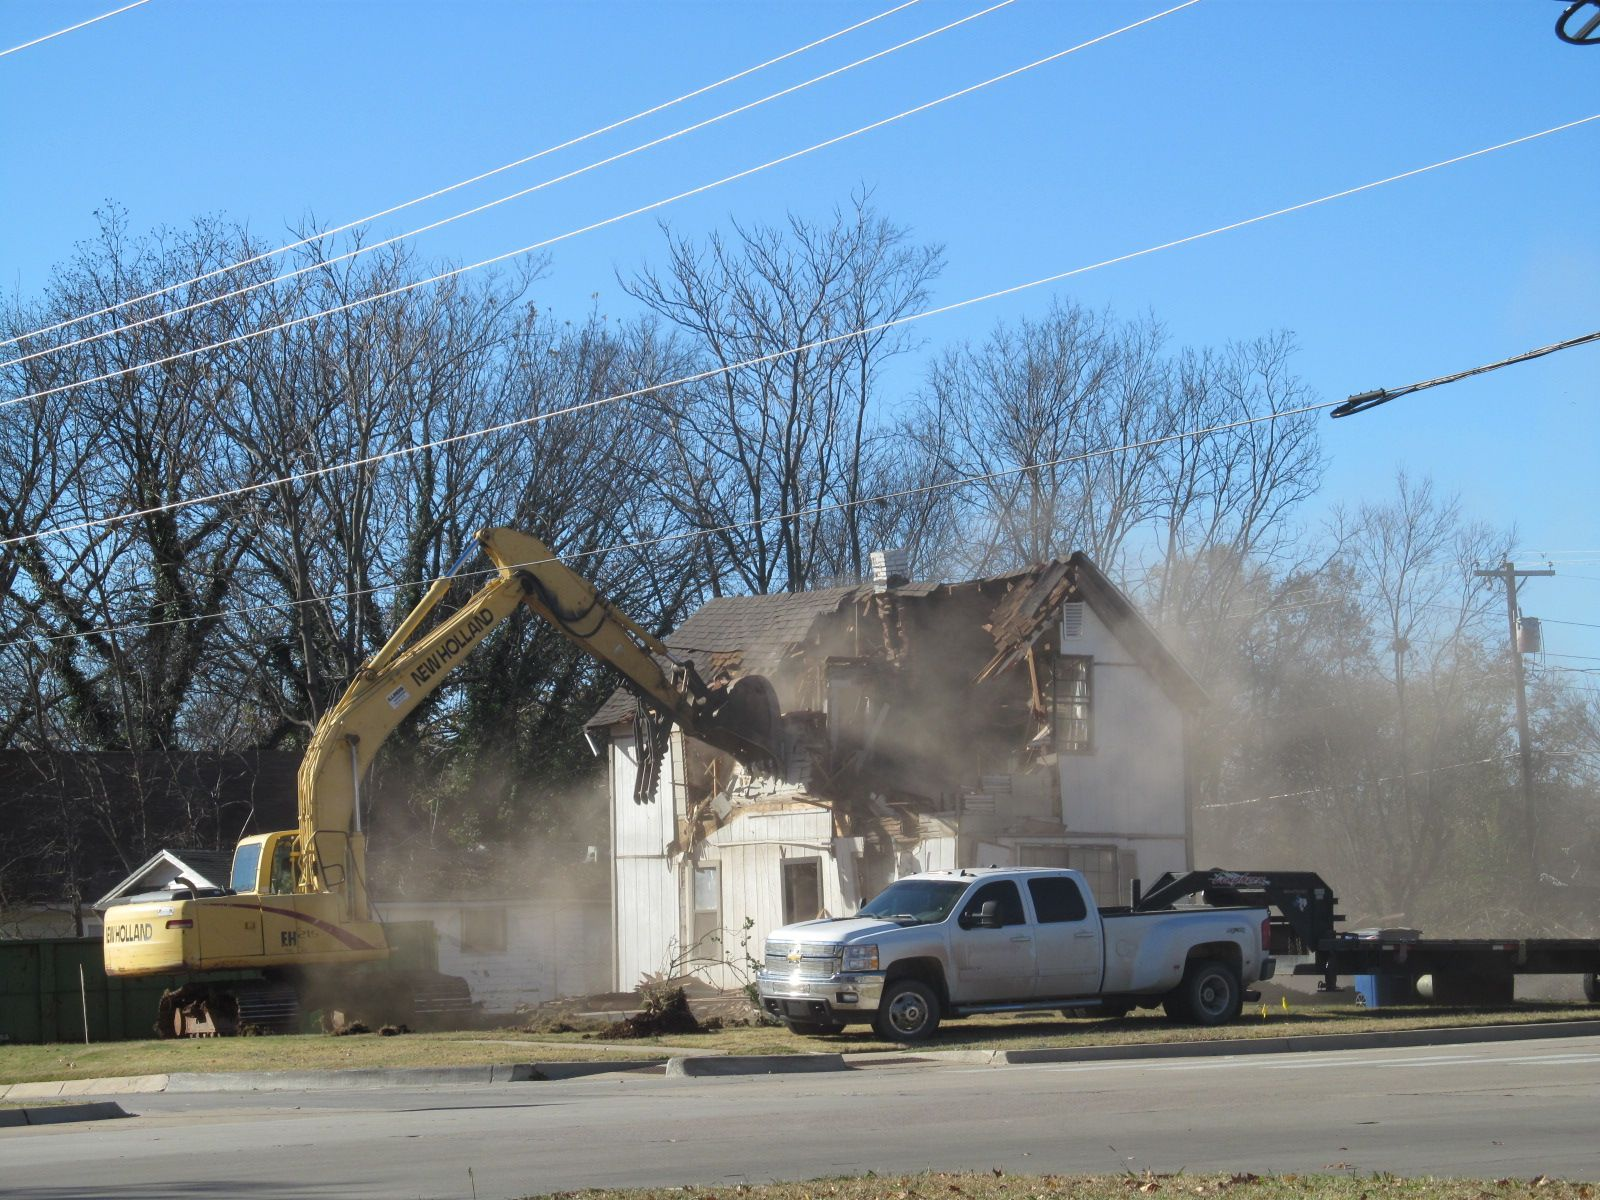 A house being demolished across from the library. Best job in the world!